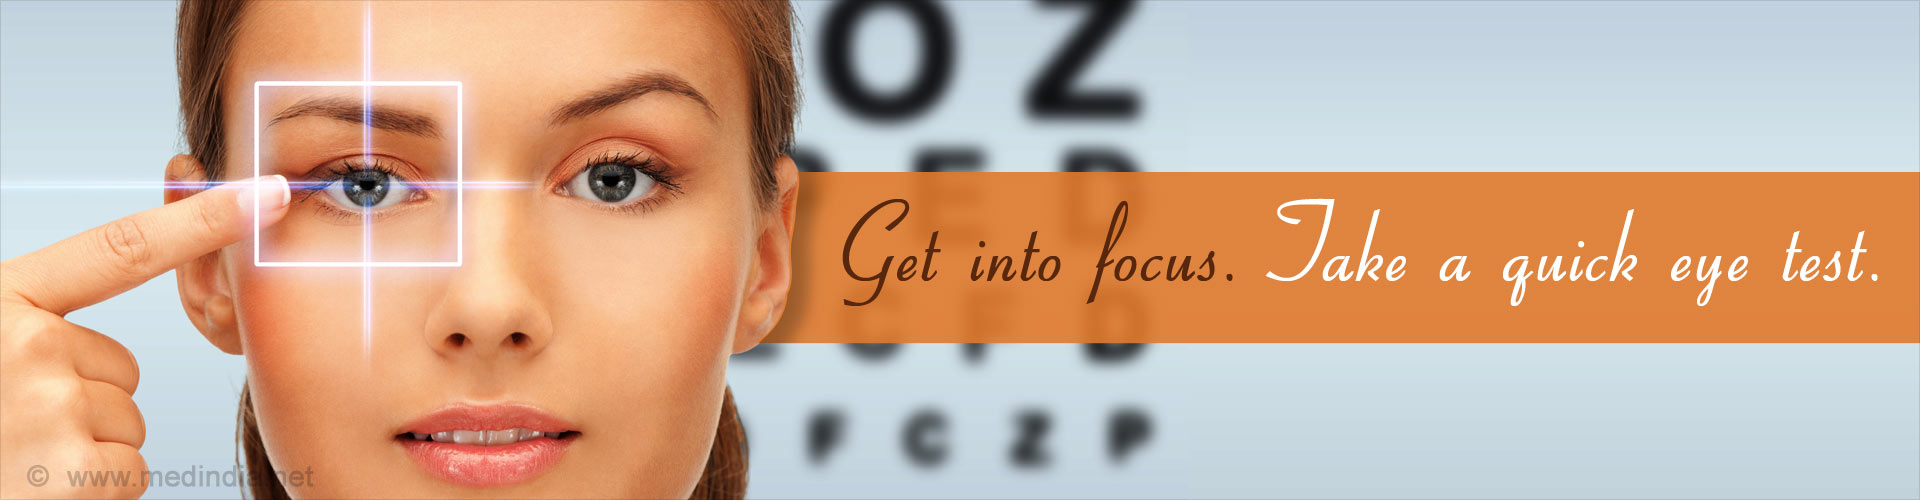 Get into focus. Take a quick eye test.